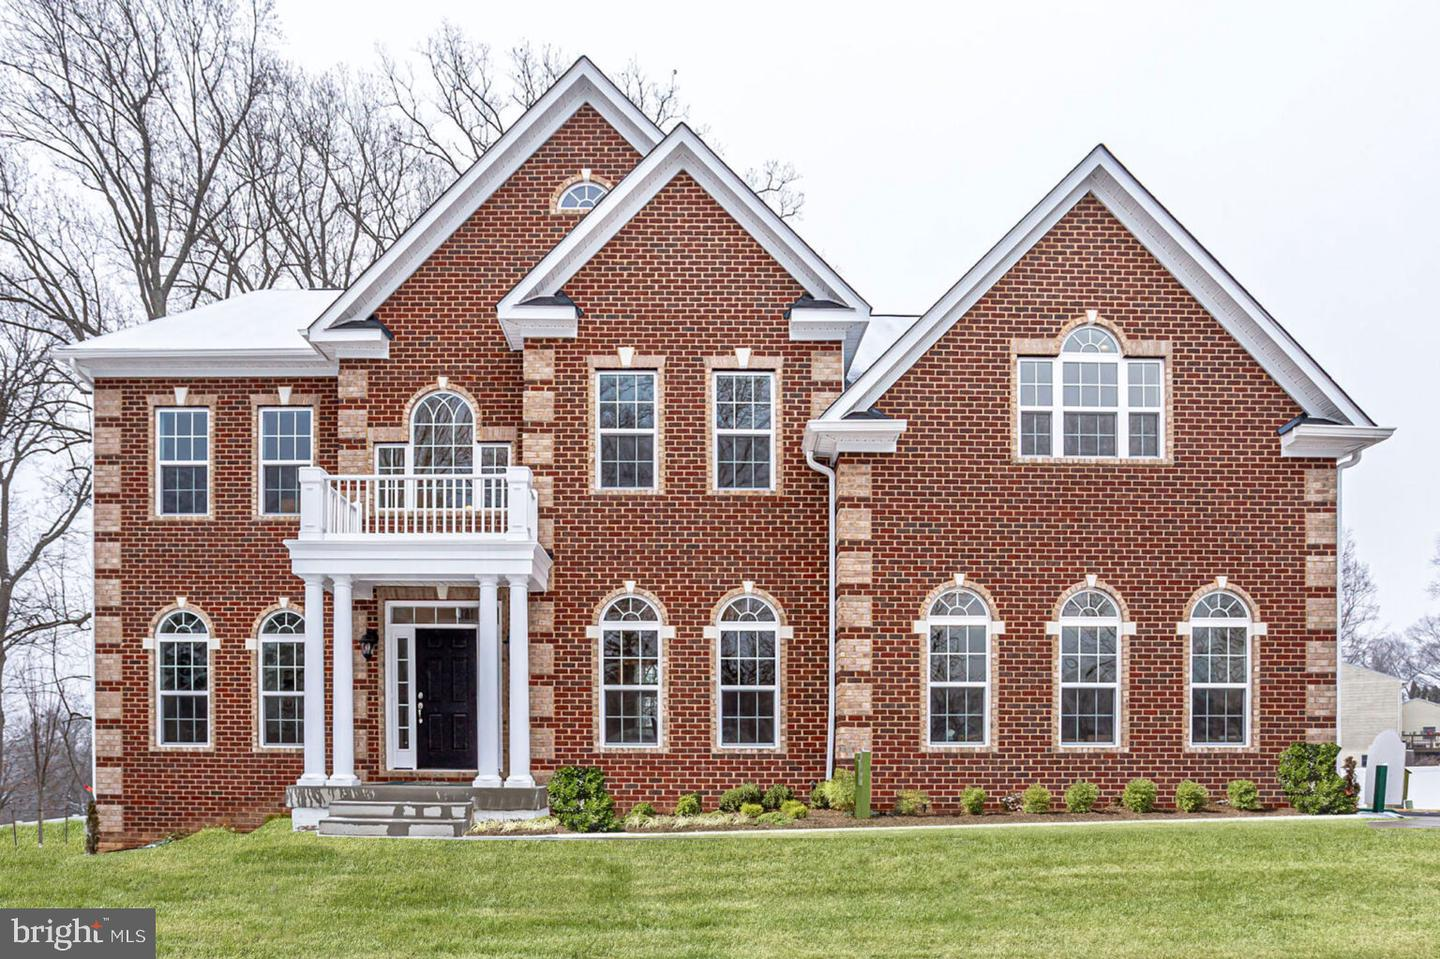 8512 ABBY LN, ELLICOTT CITY, Maryland 21042, 4 Bedrooms Bedrooms, ,4 BathroomsBathrooms,Single Family,For Sale,8512 ABBY LN,MDHW2000114